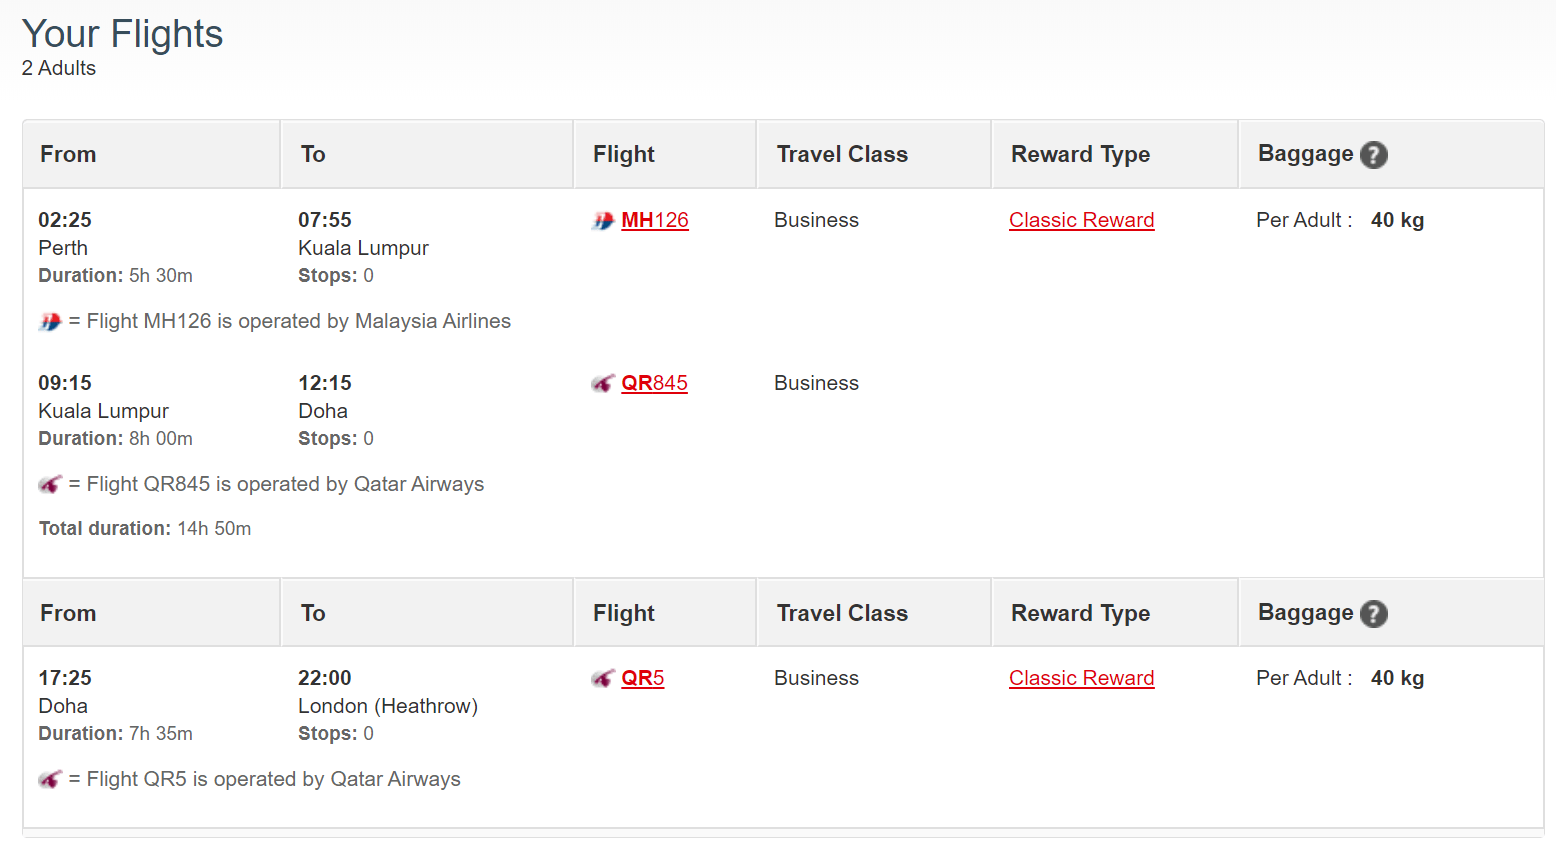 Booking multiple flight results - sample itinerary